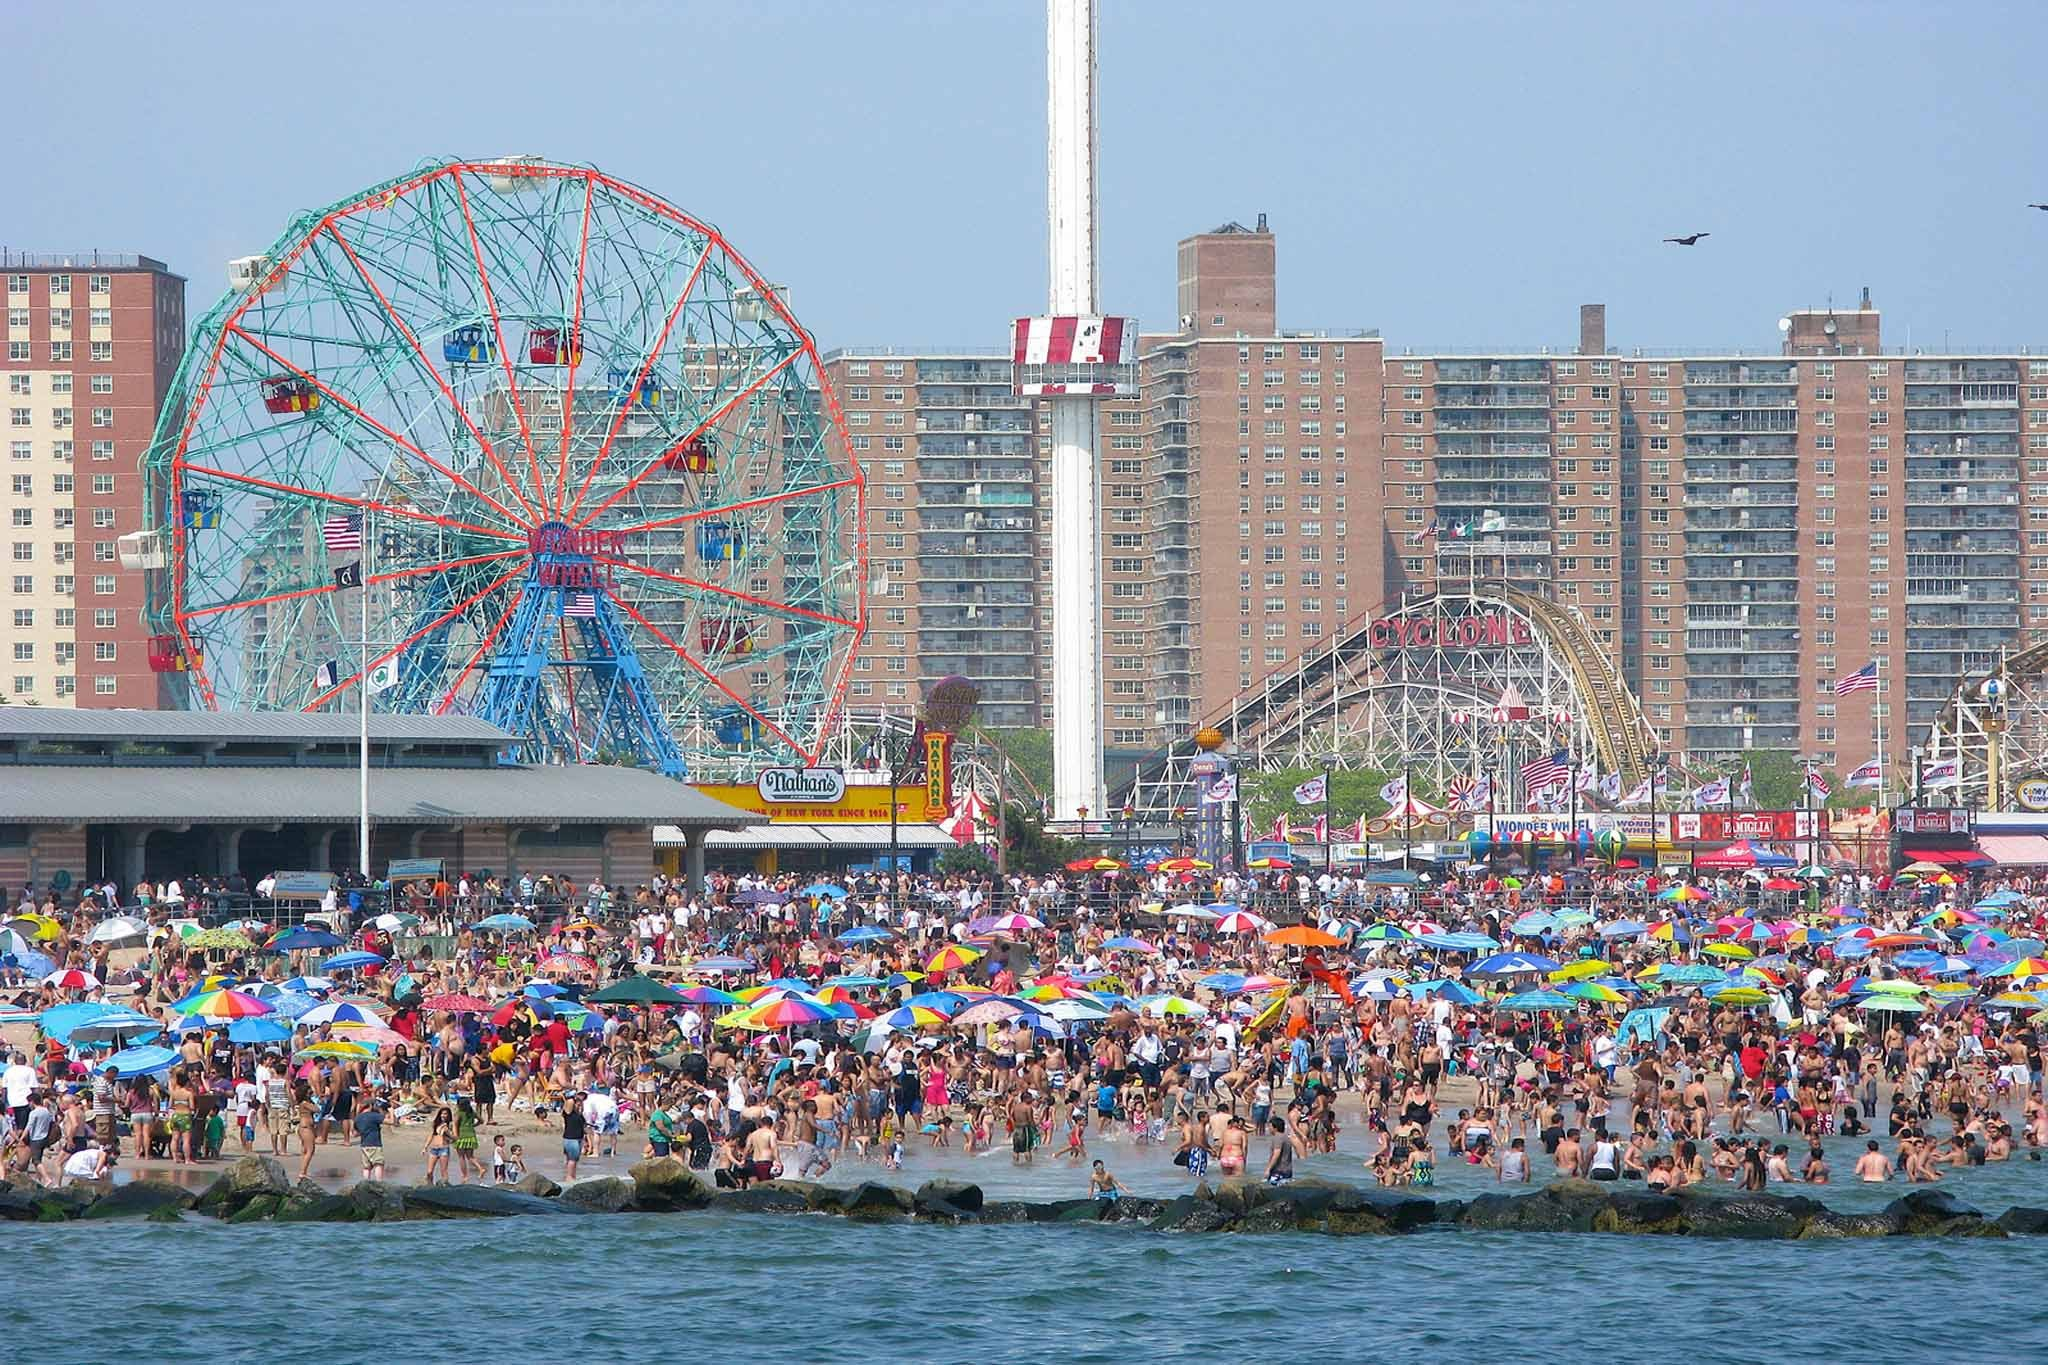 New york attractions coney island slide show for Attractions for new york